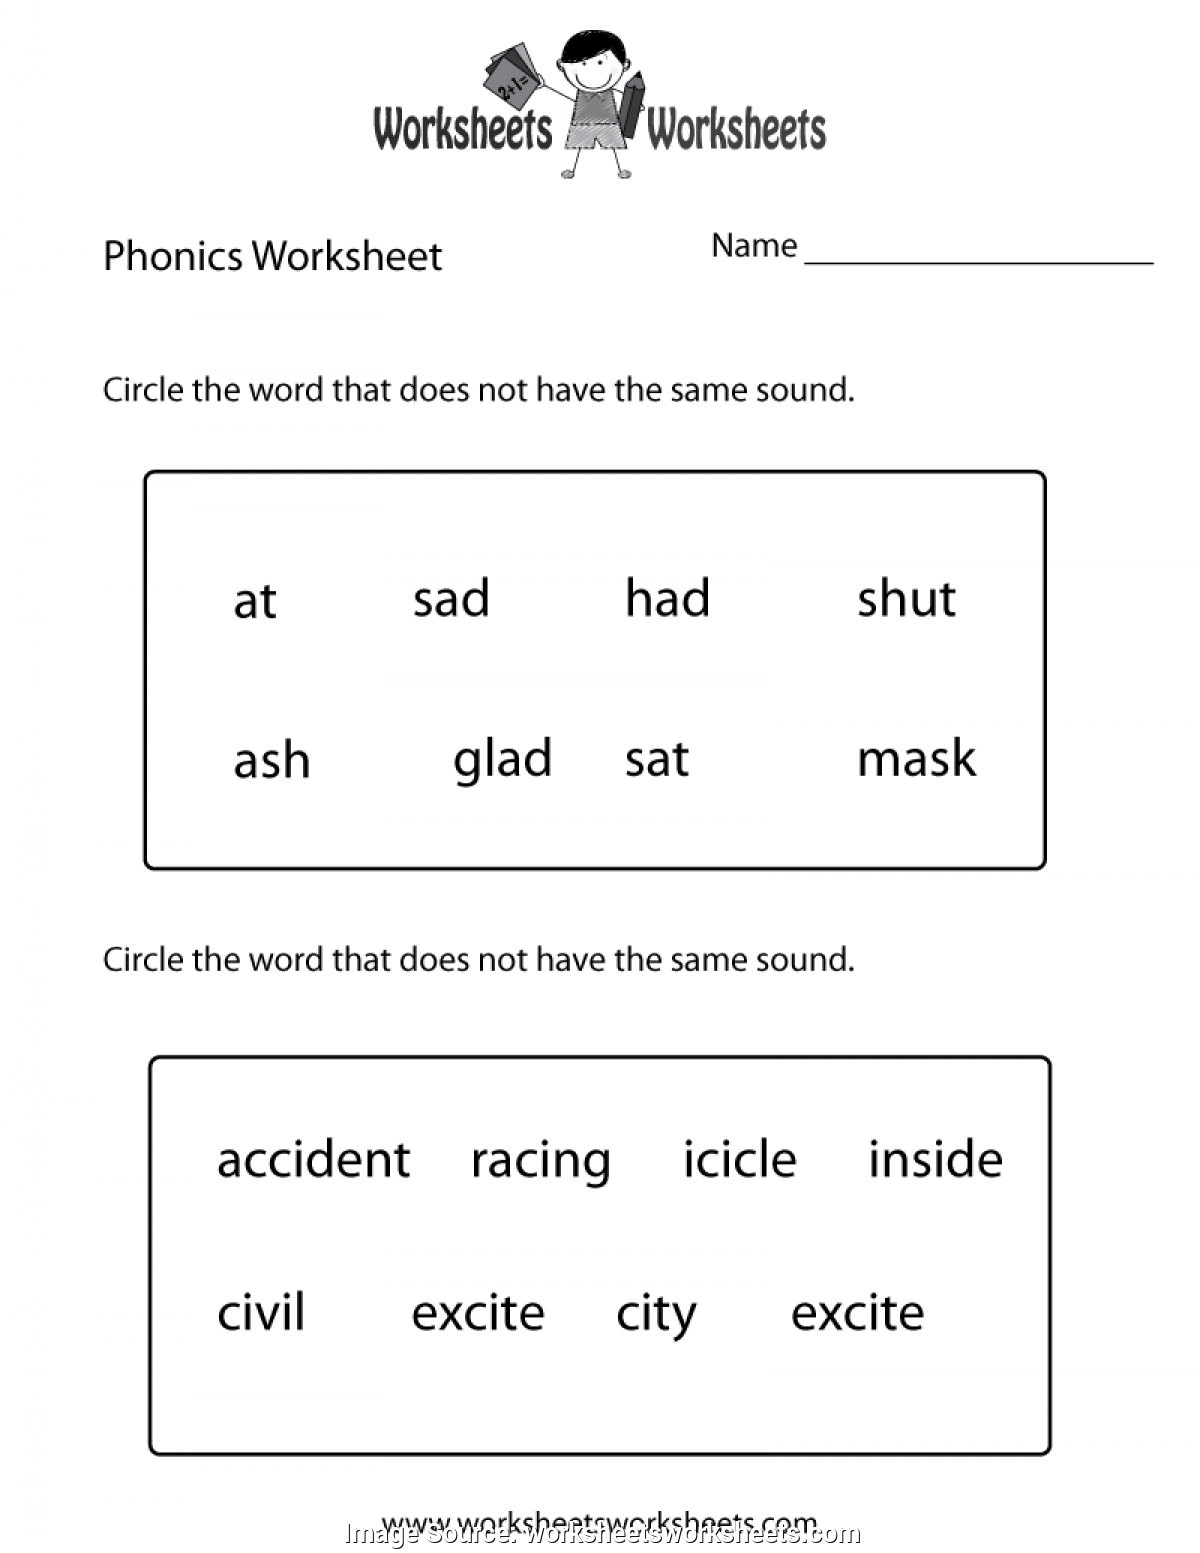 Free Printable First Grade Worksheets To Printable - Math Worksheet | Free Printable First Grade Worksheets